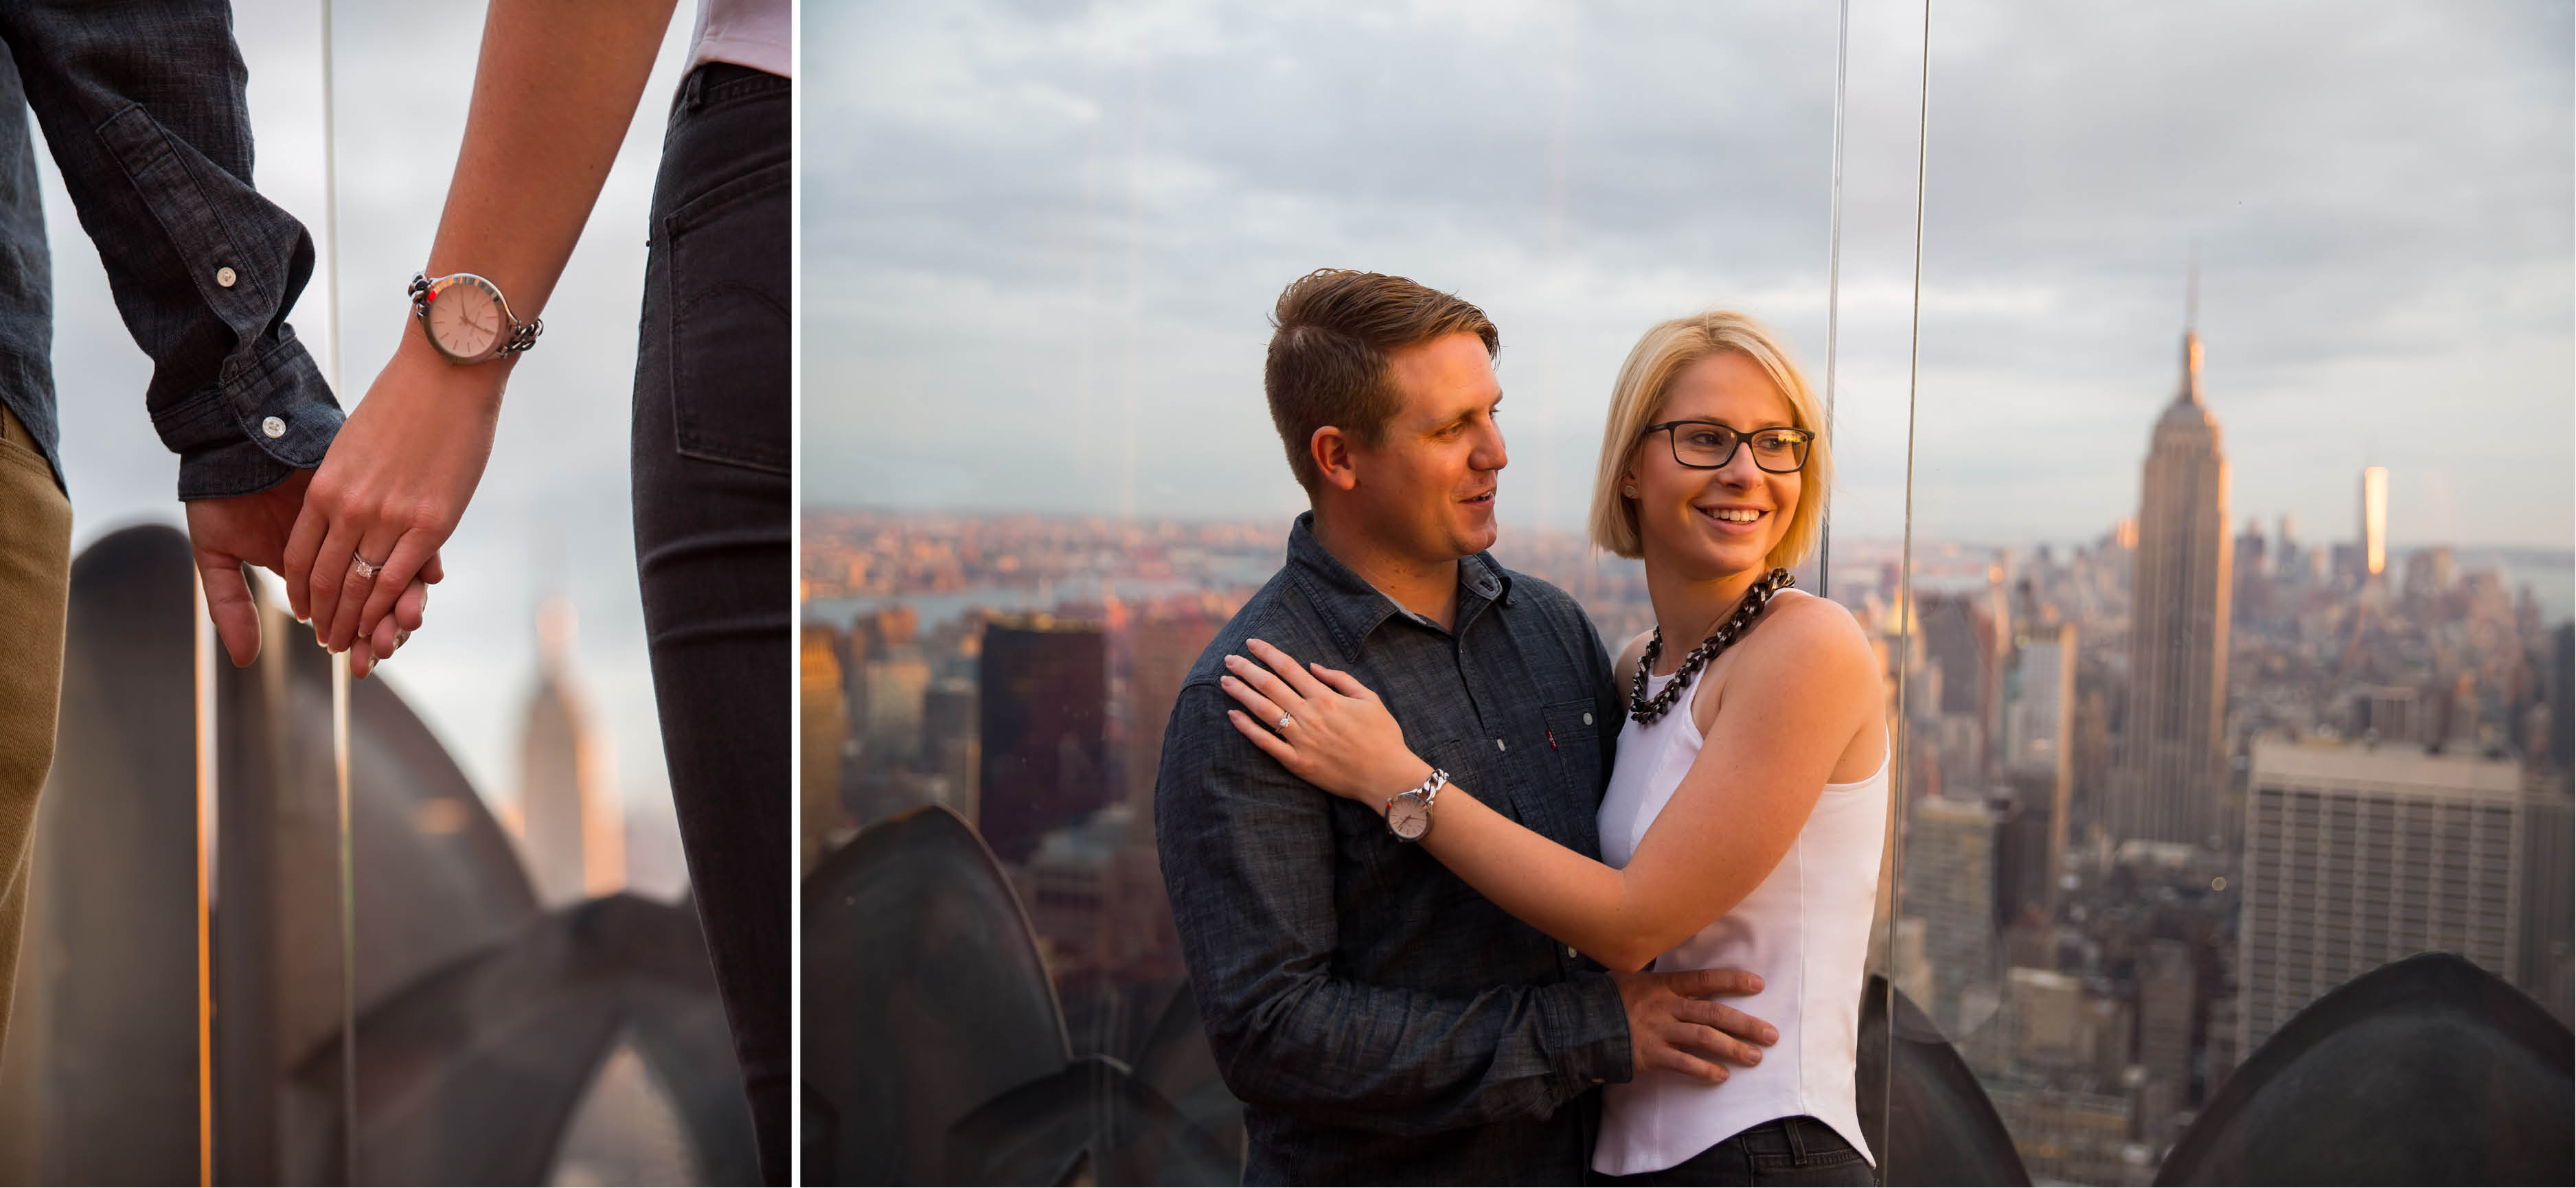 Emma_cleary_photography top of the rock engagement11